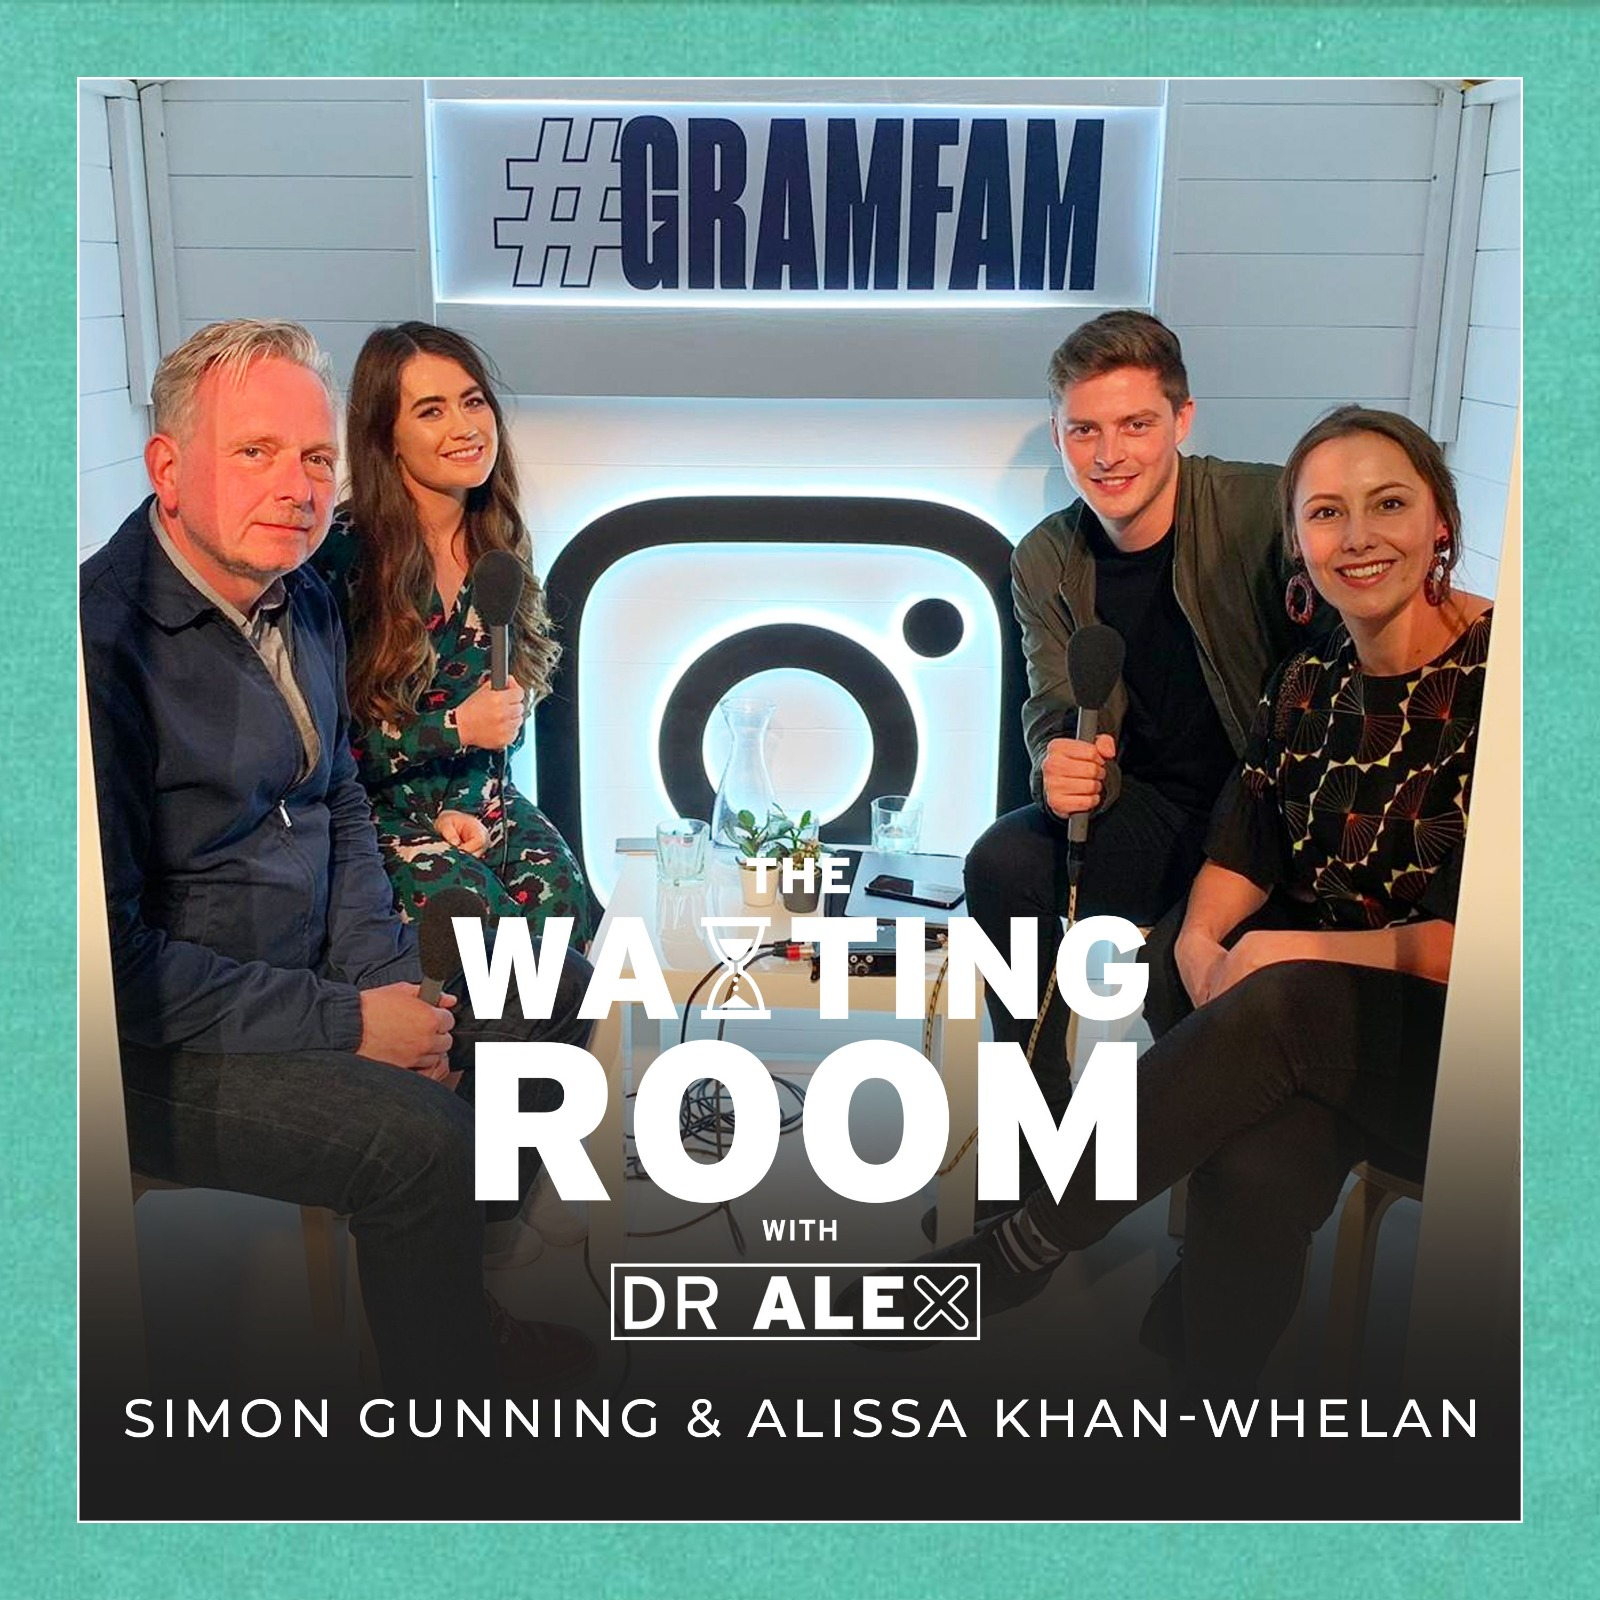 Live at #GramFam (feat. Simon Gunning & Alissa Khan-Whelan)